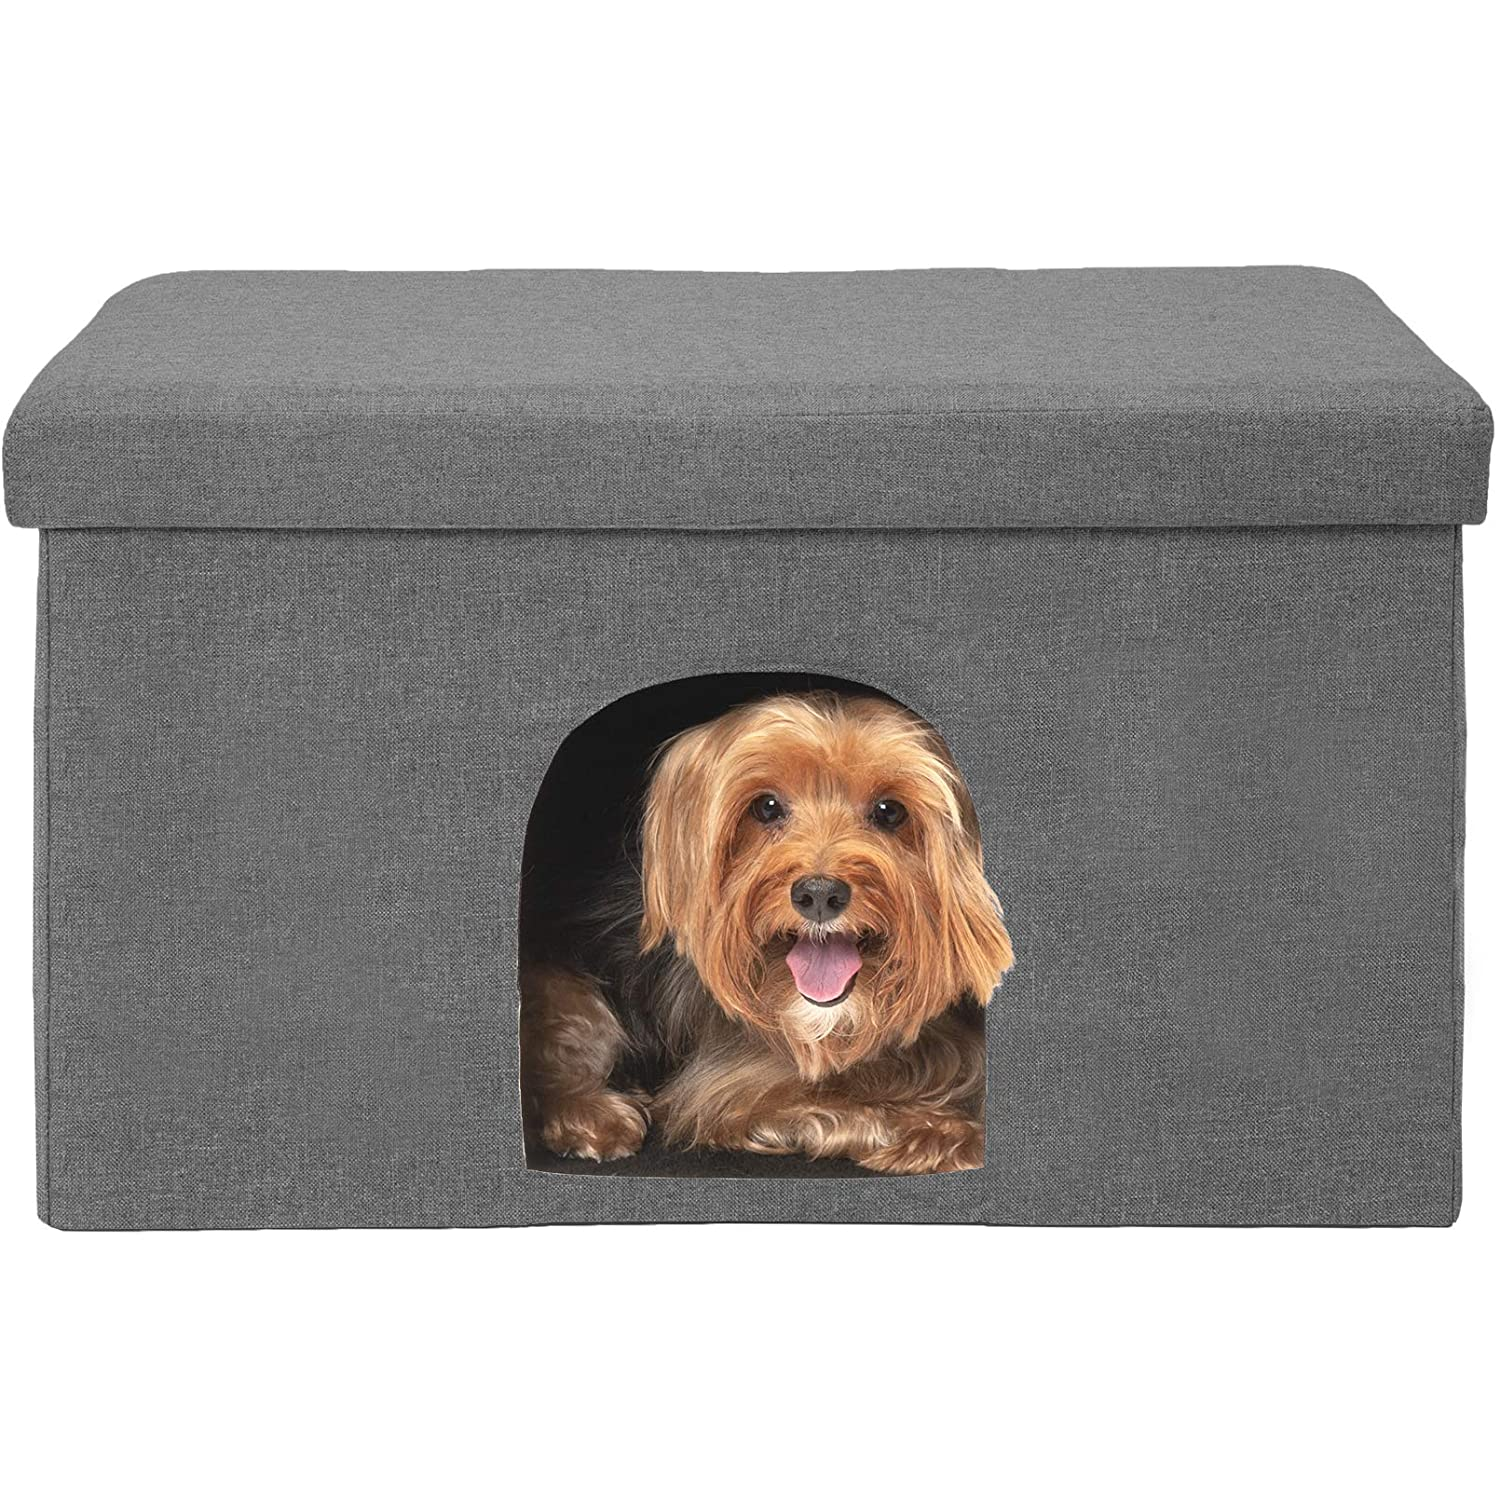 Furhaven Pet Dog Bed Cat Bed House Ottoman Footstool Collapsible Living Room Pet House Condo for Cats Small Dogs, Stormy Gray, Large